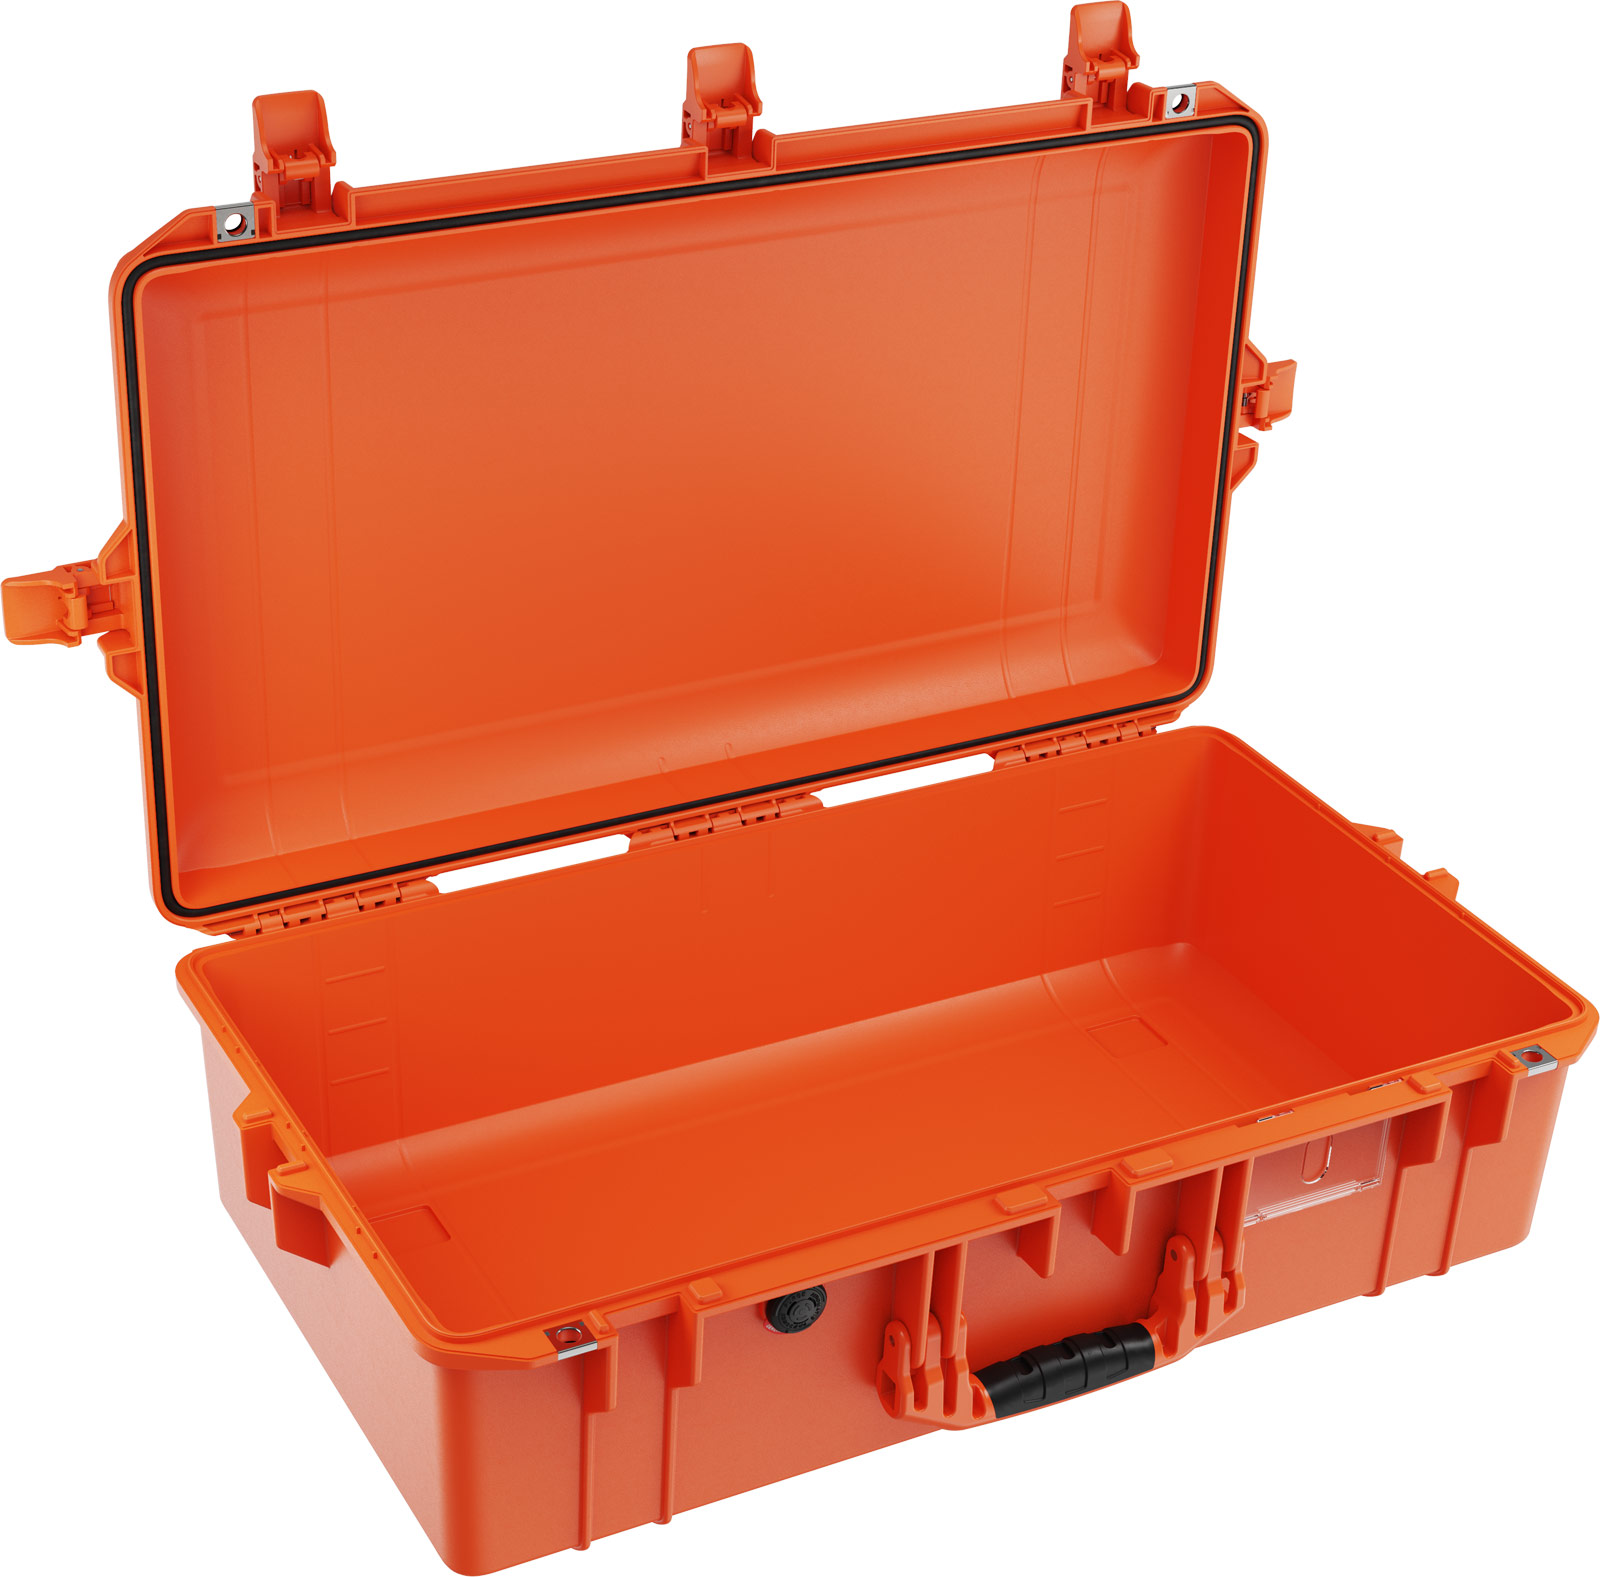 buy pelican air 1605 shop orange photography case